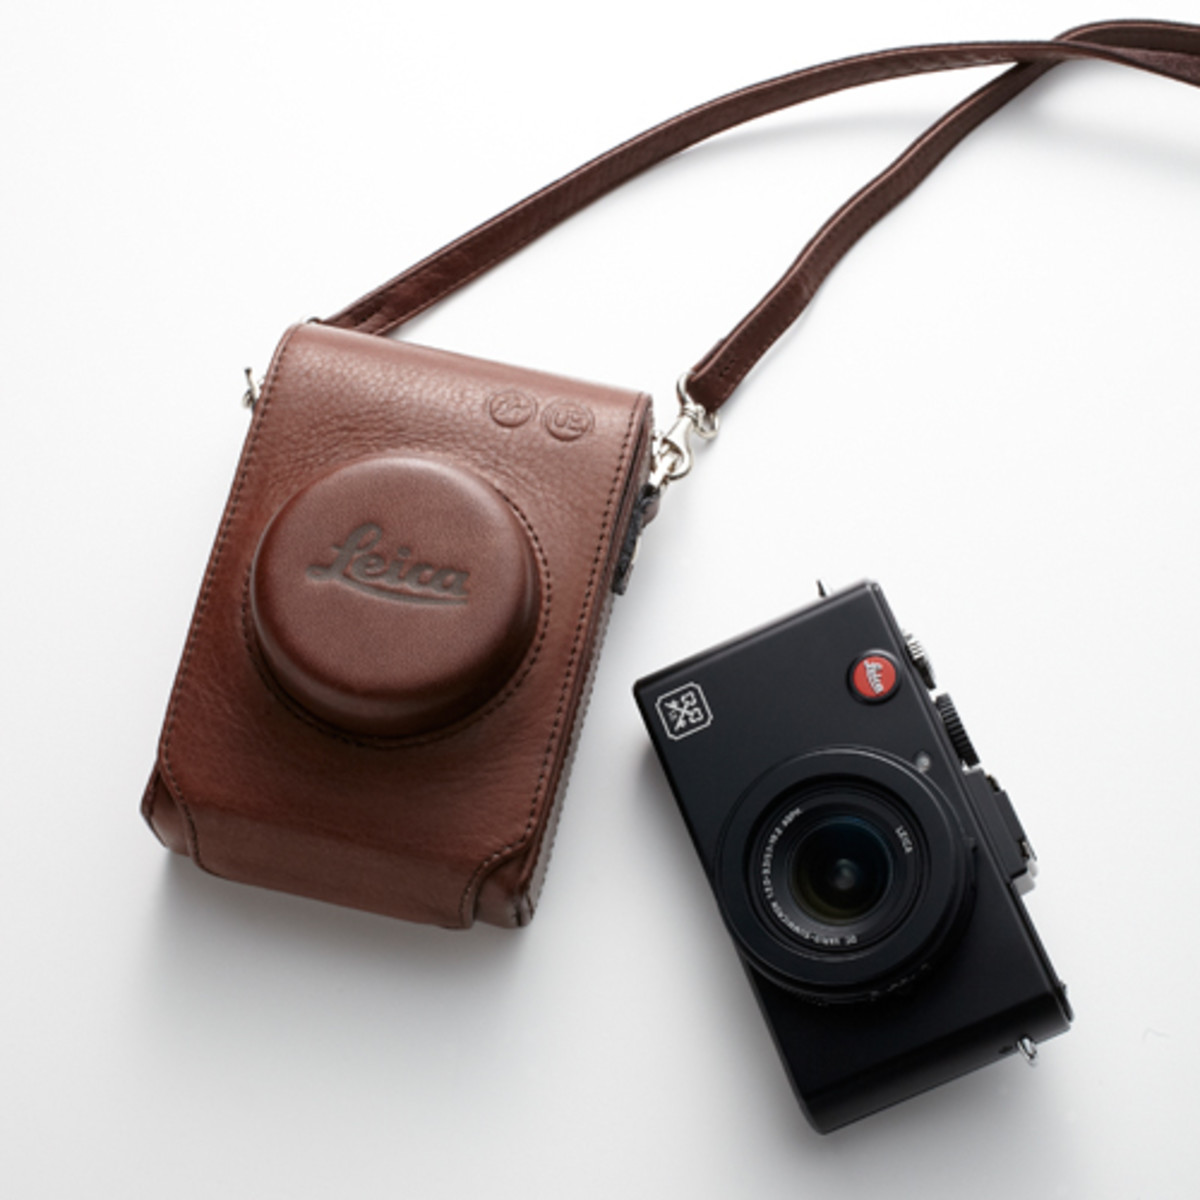 leica-x-ue-d-lux-5-detailed-look-8